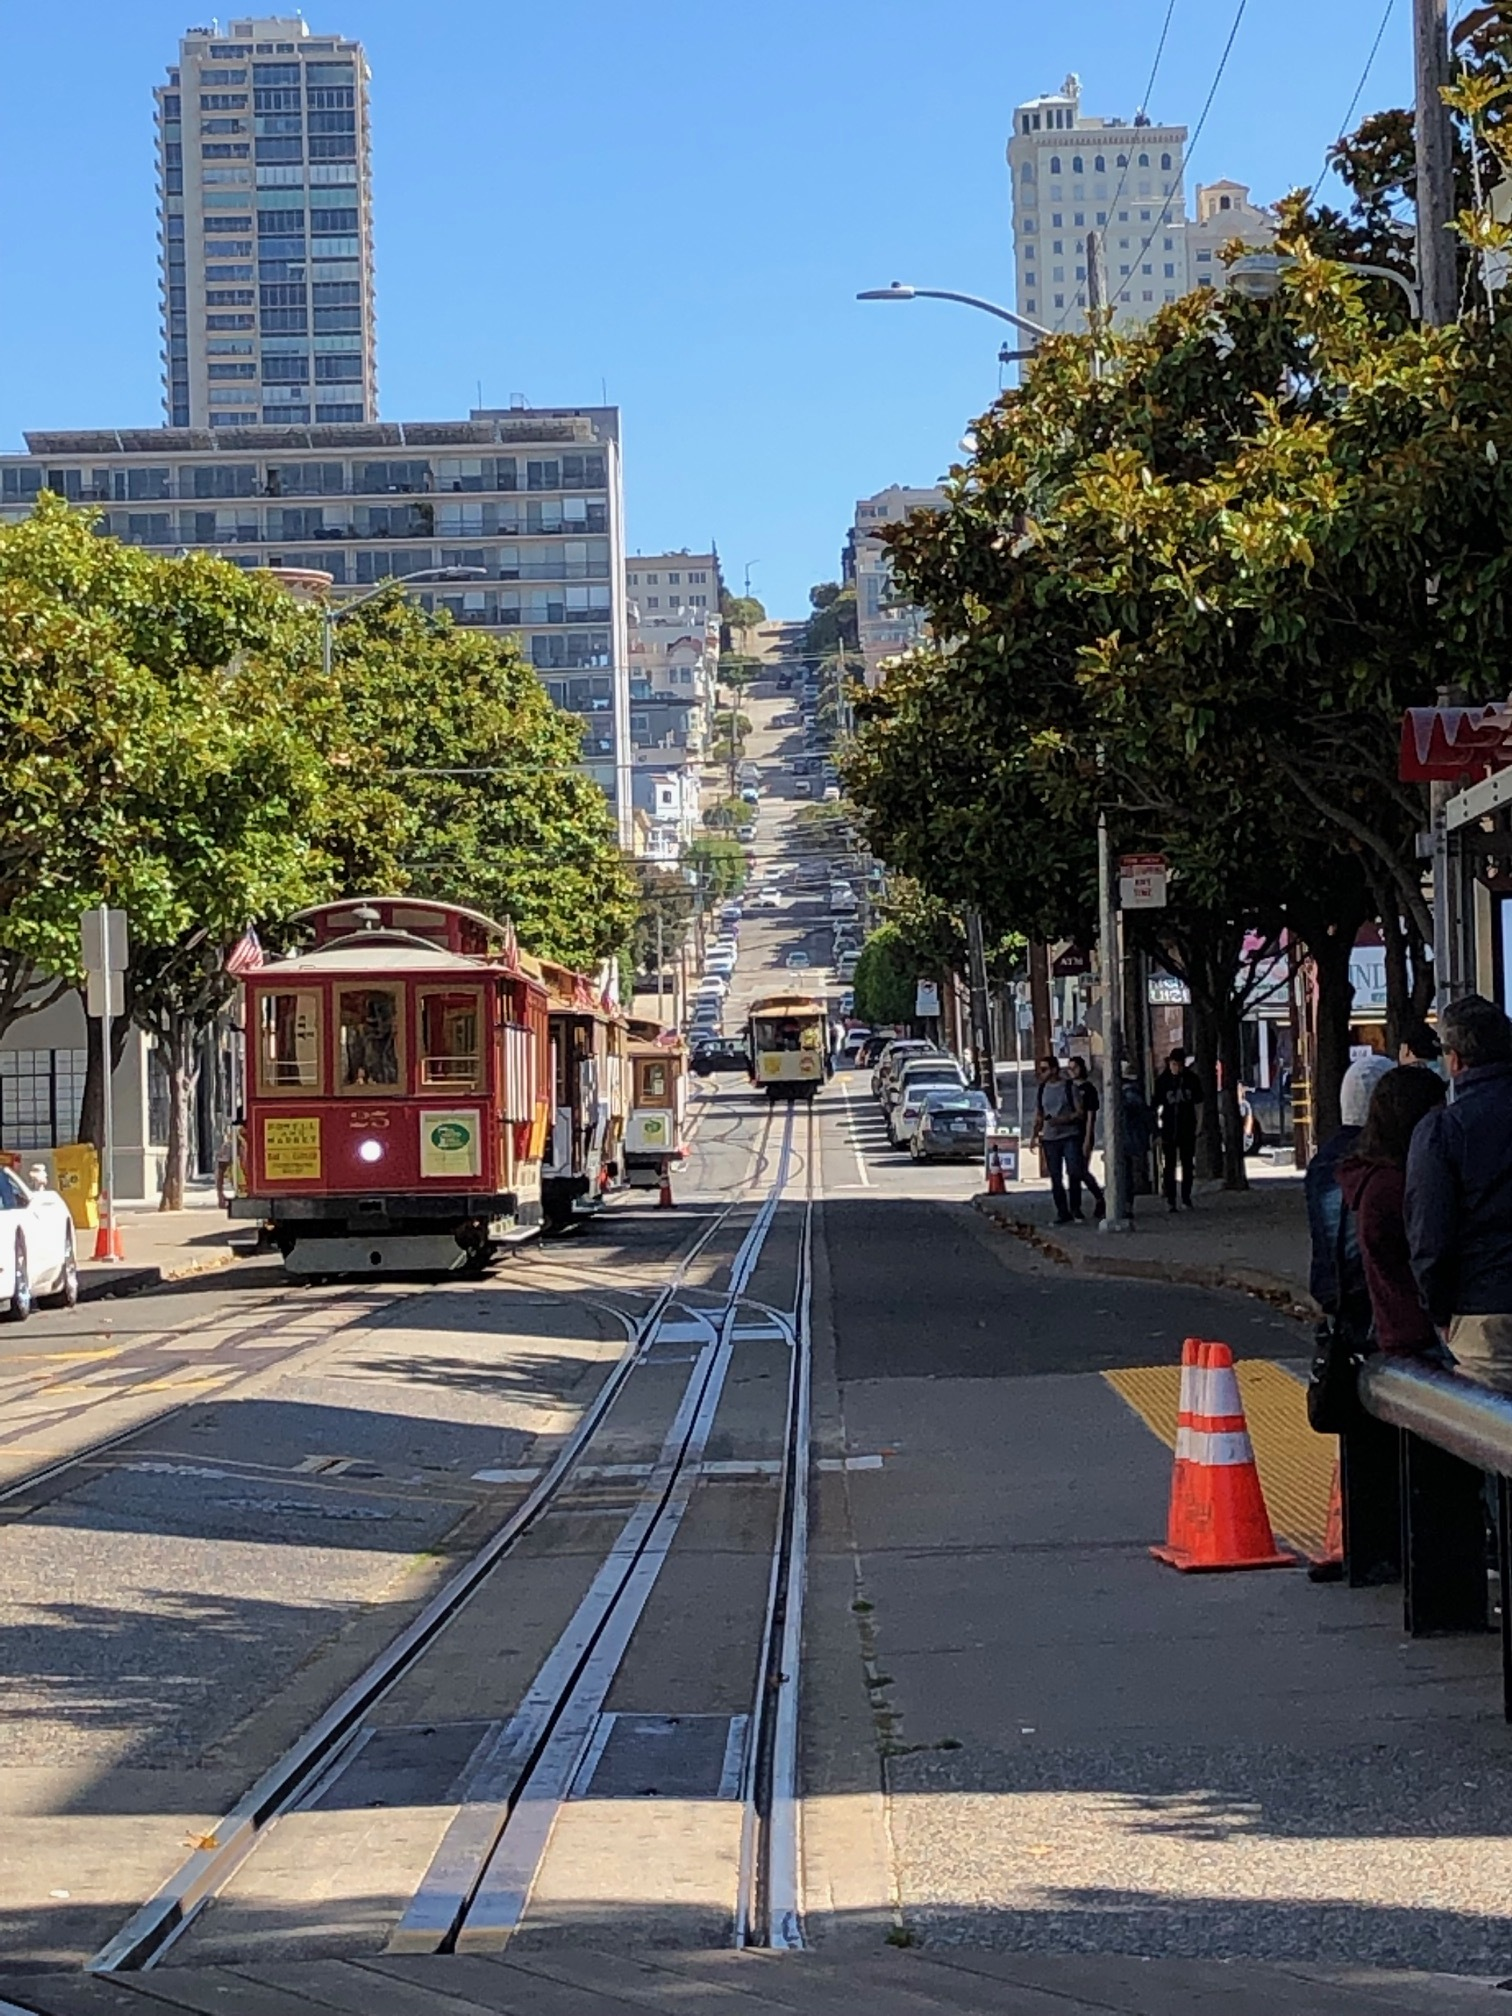 A look down the road when the trolley was on its way.